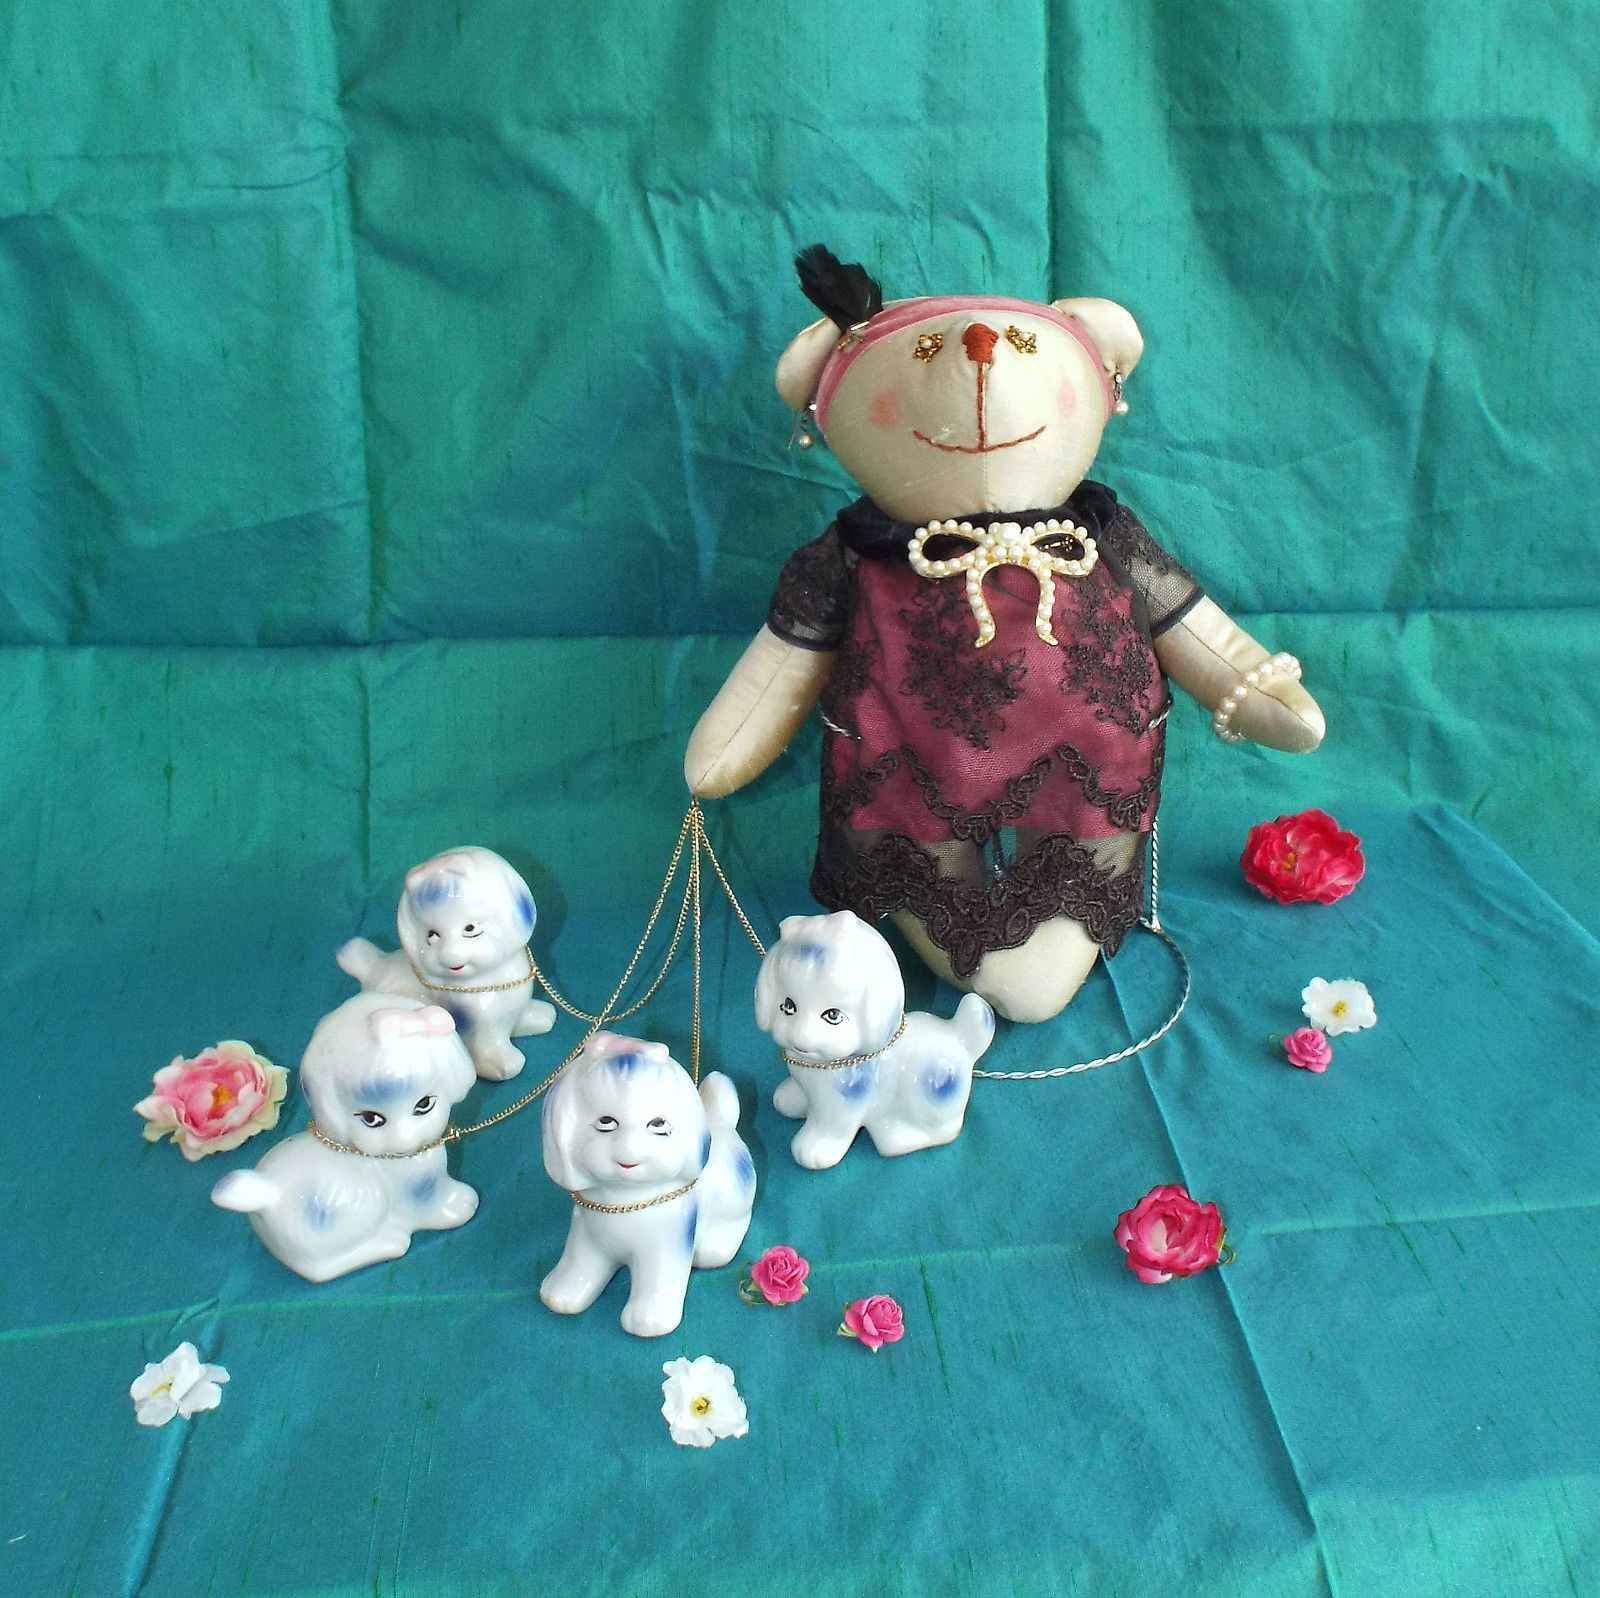 Art toy bear with her dogs stuffed toy teddy bear doll handmade unique silk  http://www.ebay.co.uk/itm/-/262706474401